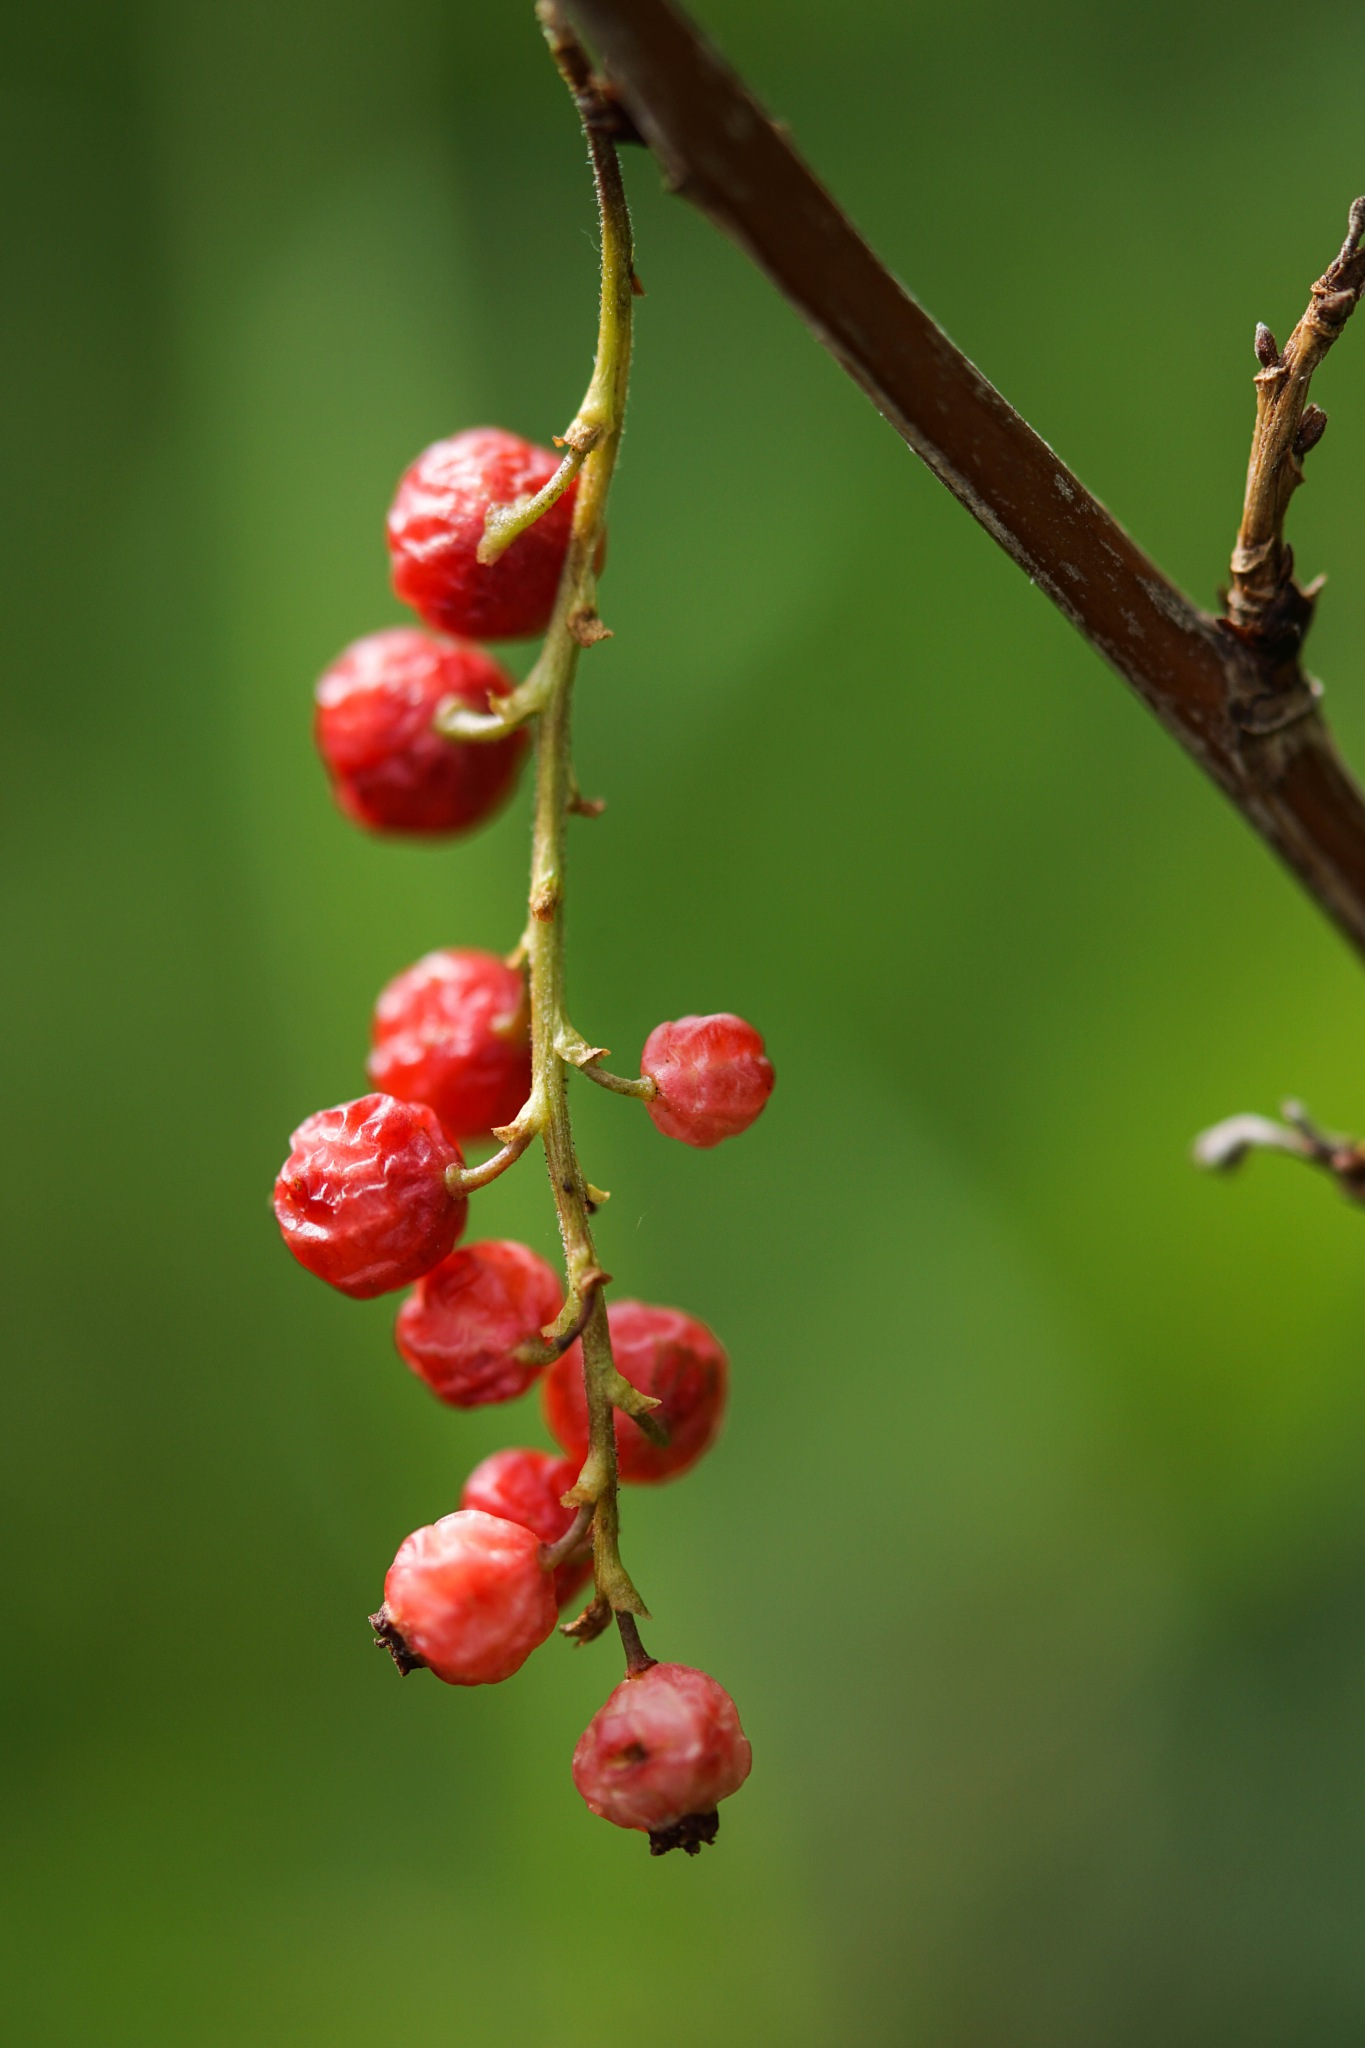 Last year berries, still red and beautiful. by SaraEkberg